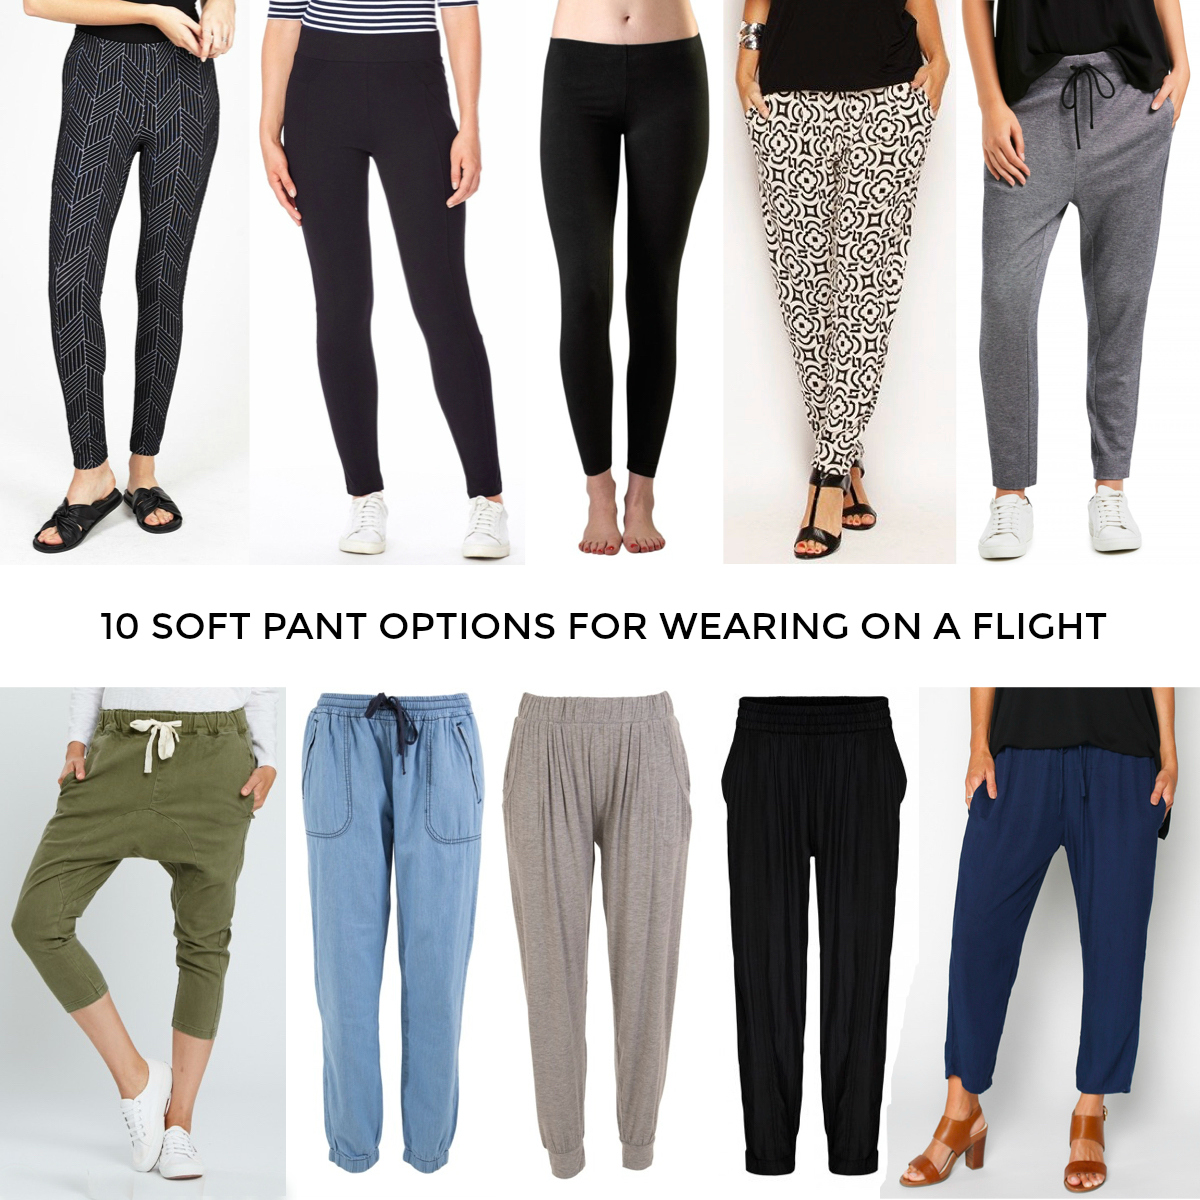 10 Soft Pant Options For Wearing On A Flight When